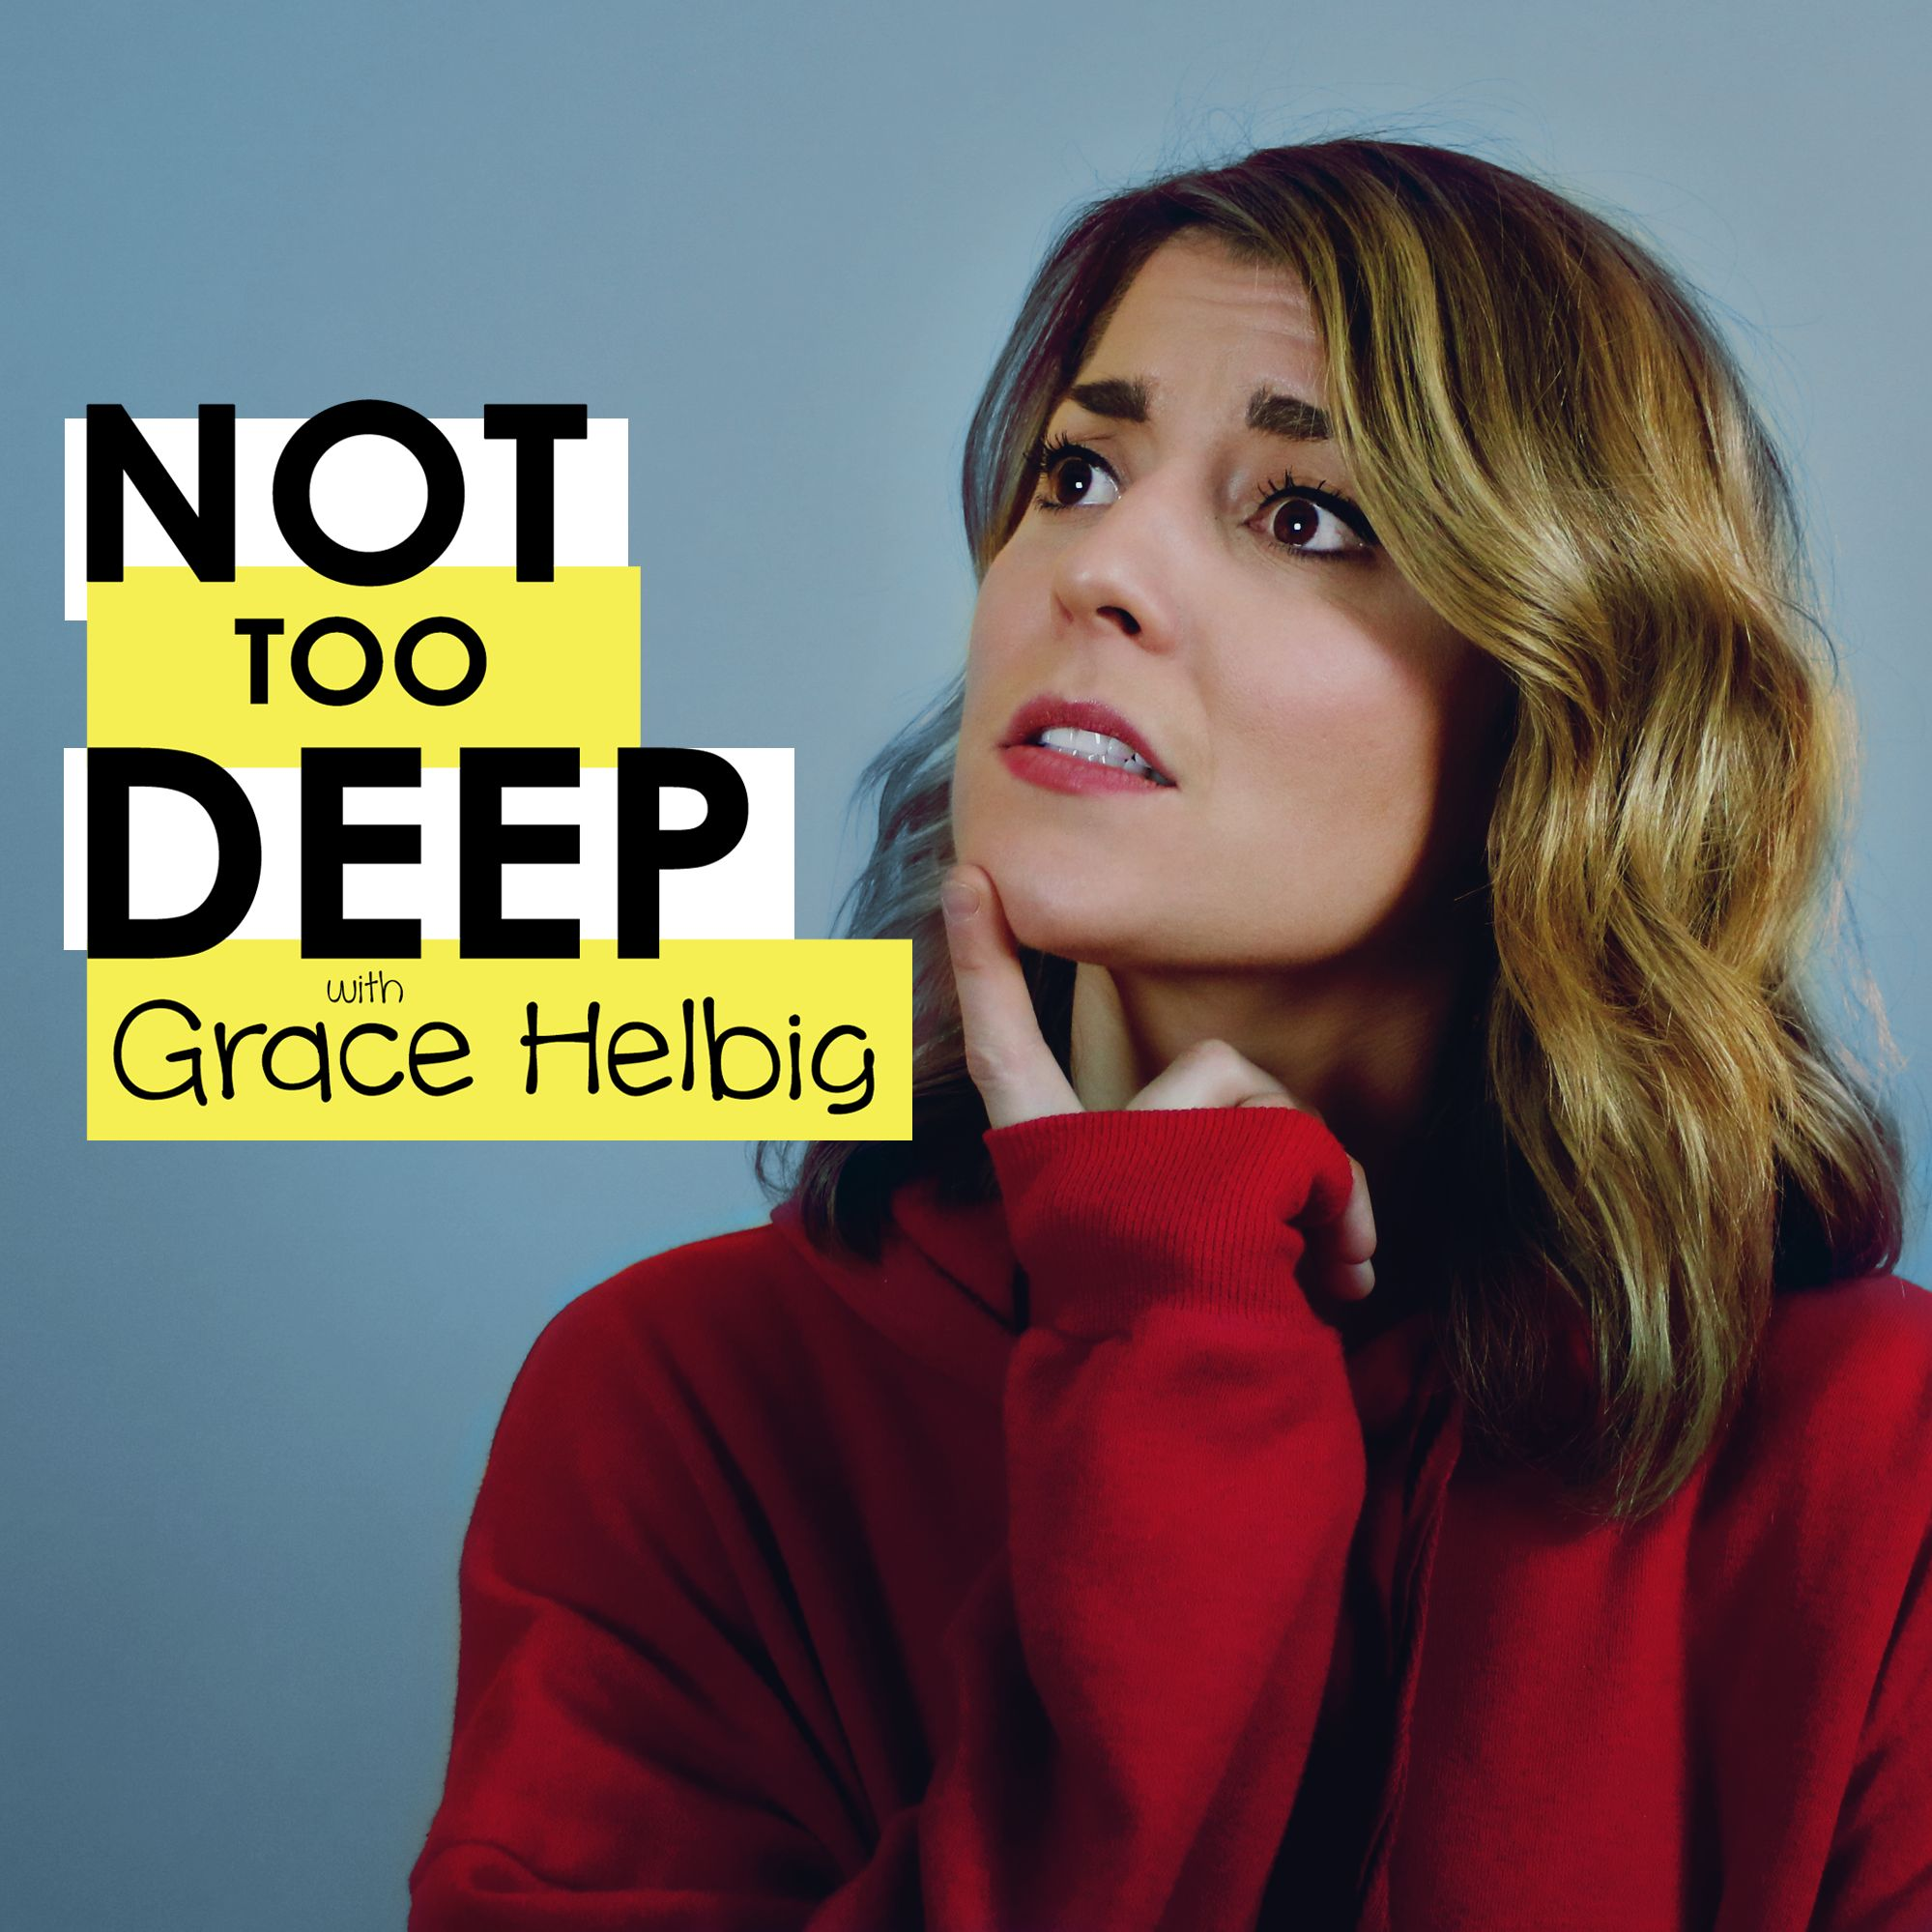 Not Too Deep with Grace | Free Listening on SoundCloud